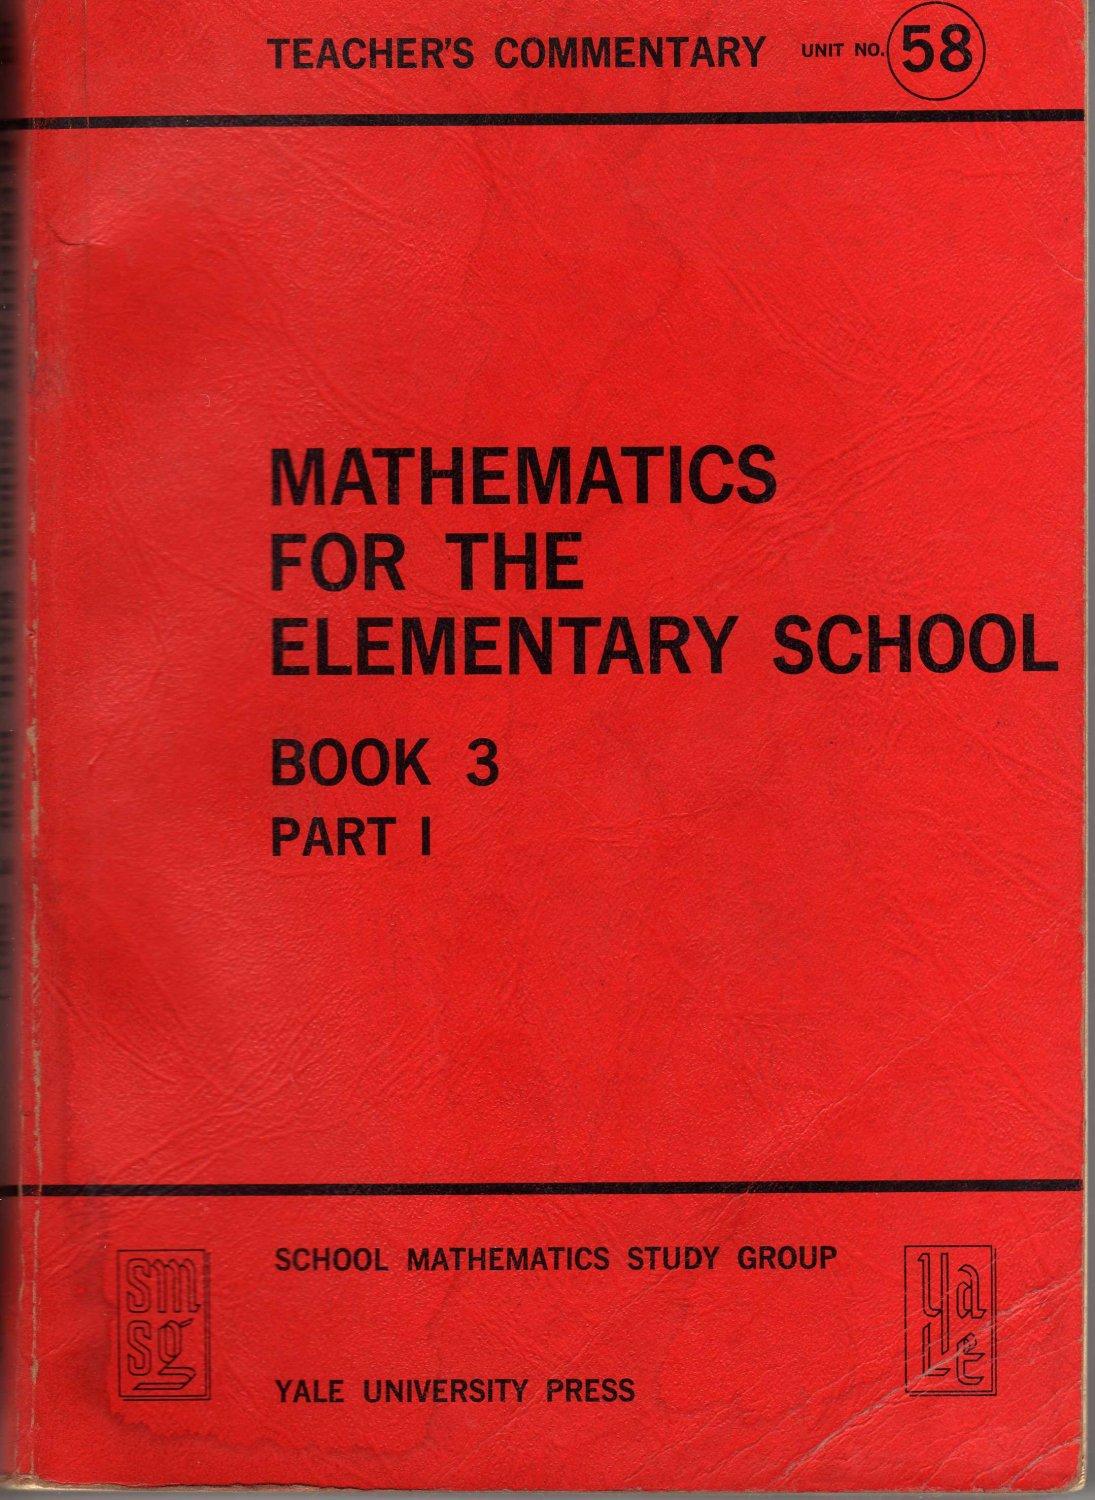 Mathematics for the Elementary School, Book 3 Part 1 Unit No. 58 (Paperback 1965)